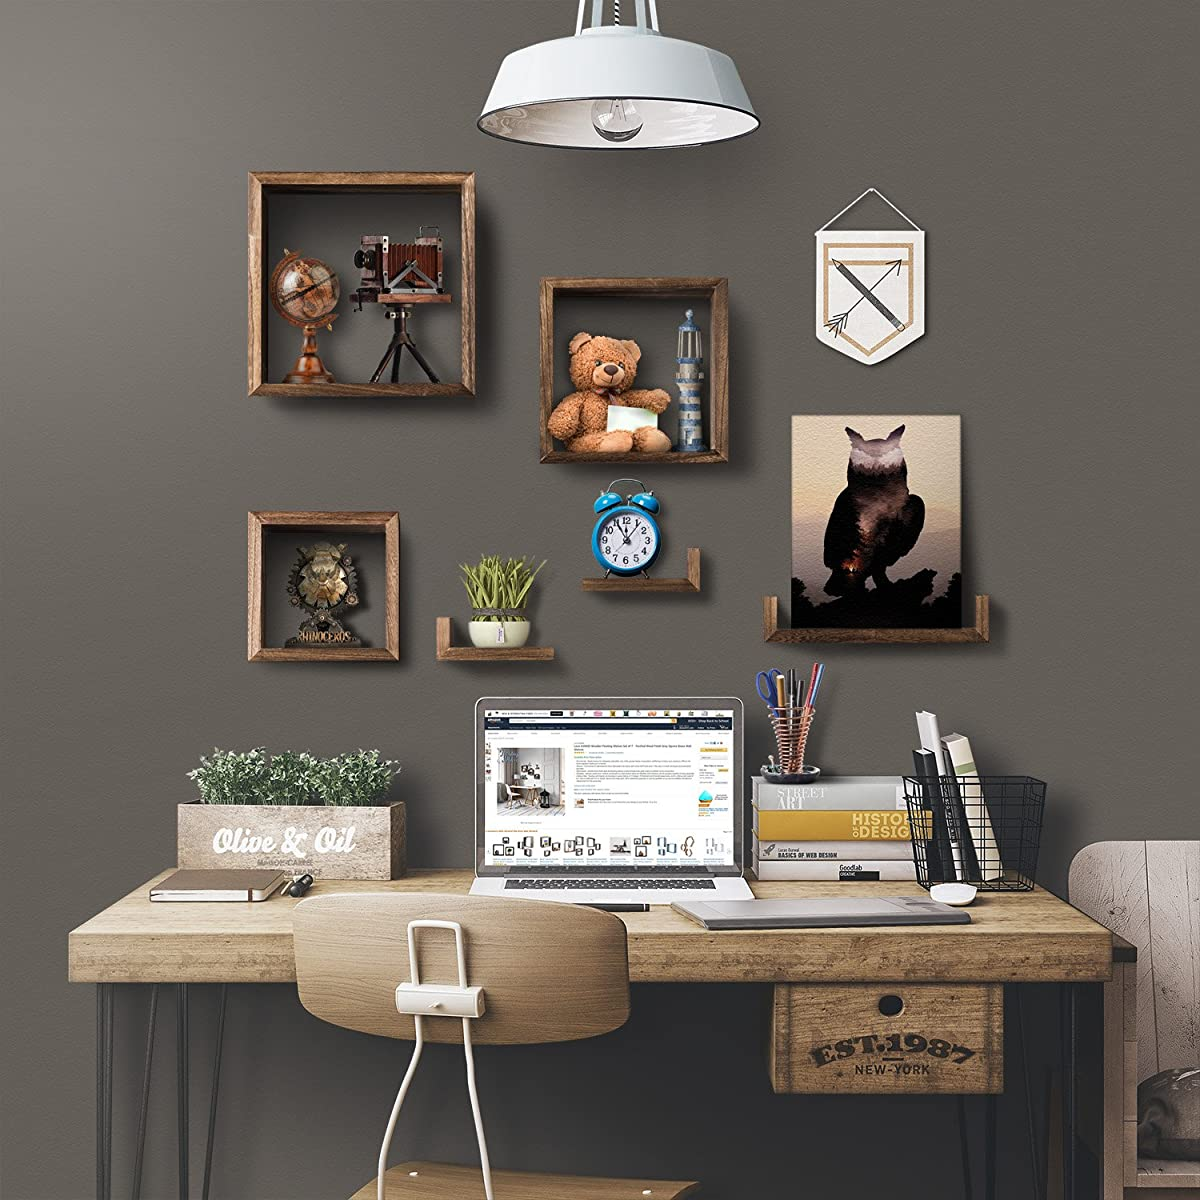 Love-KANKEI Wooden Floating Shelves Set of 7 - Torched Wood Finish Grey Square Boxes Wall Shelves